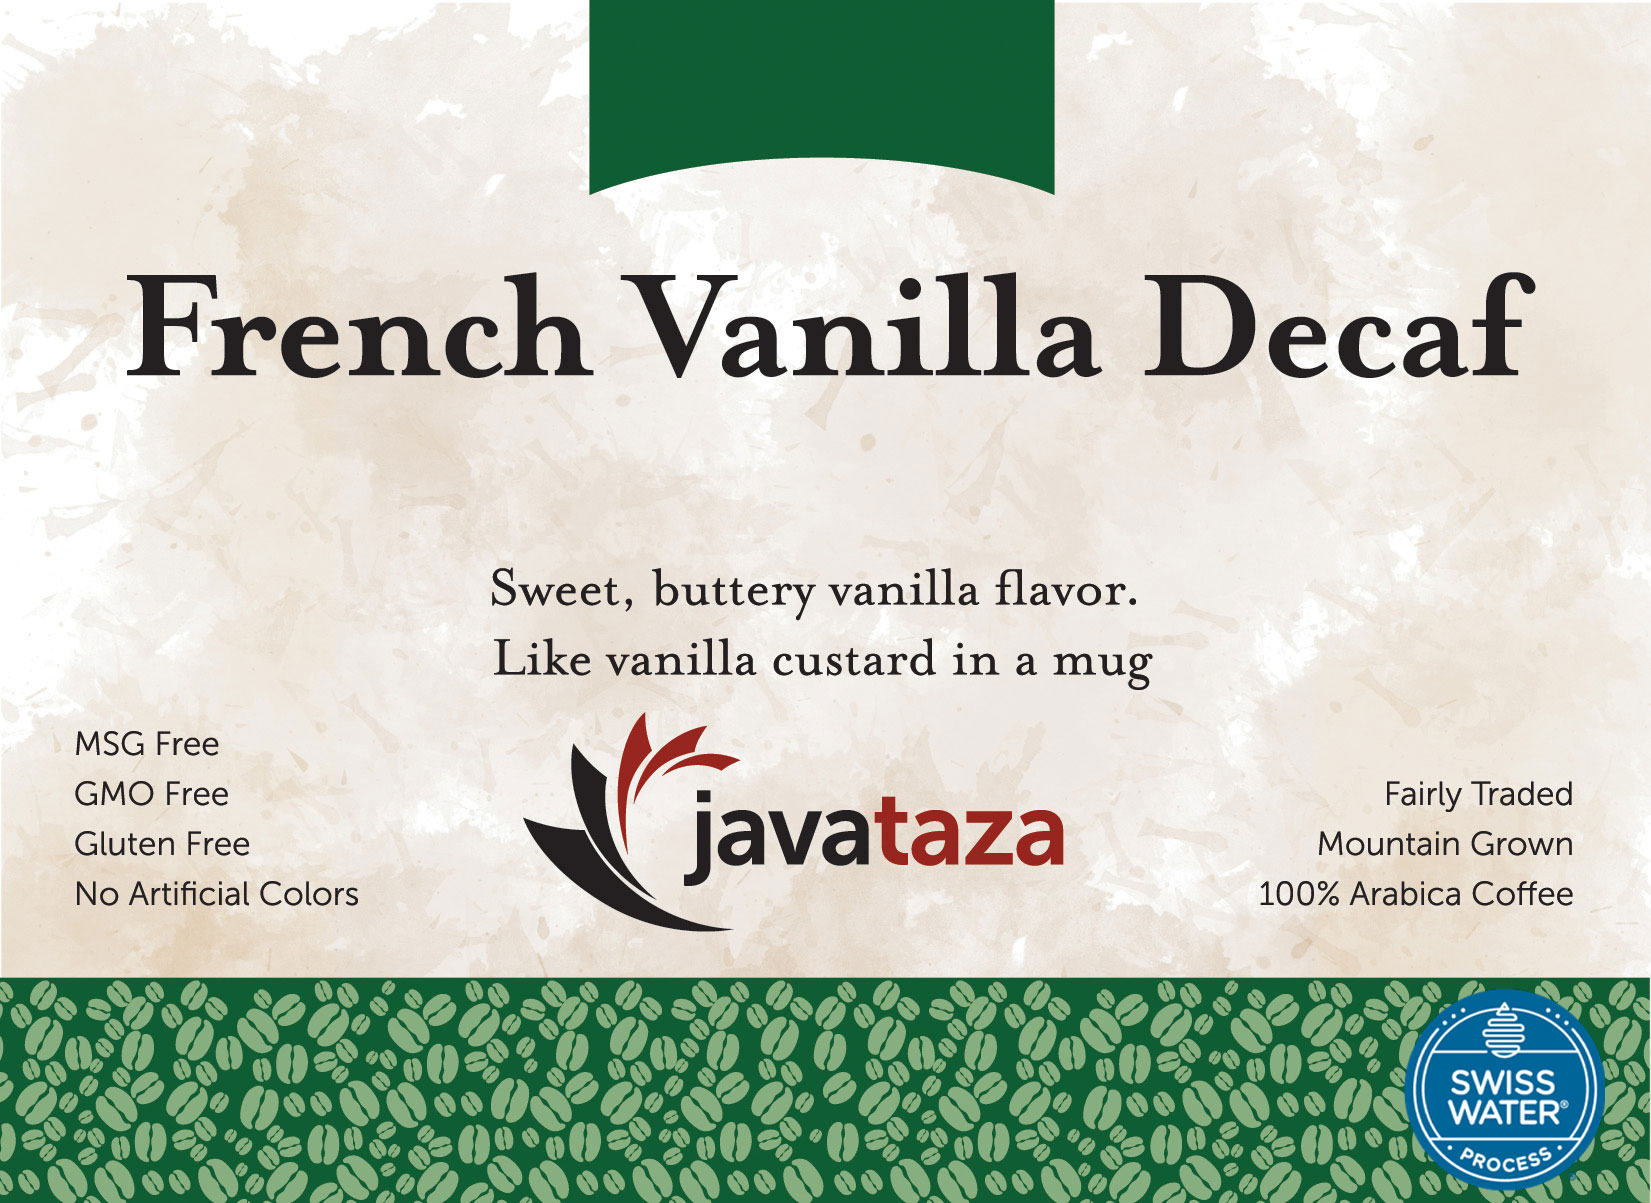 french vanilla decaf coffee swiss water processed